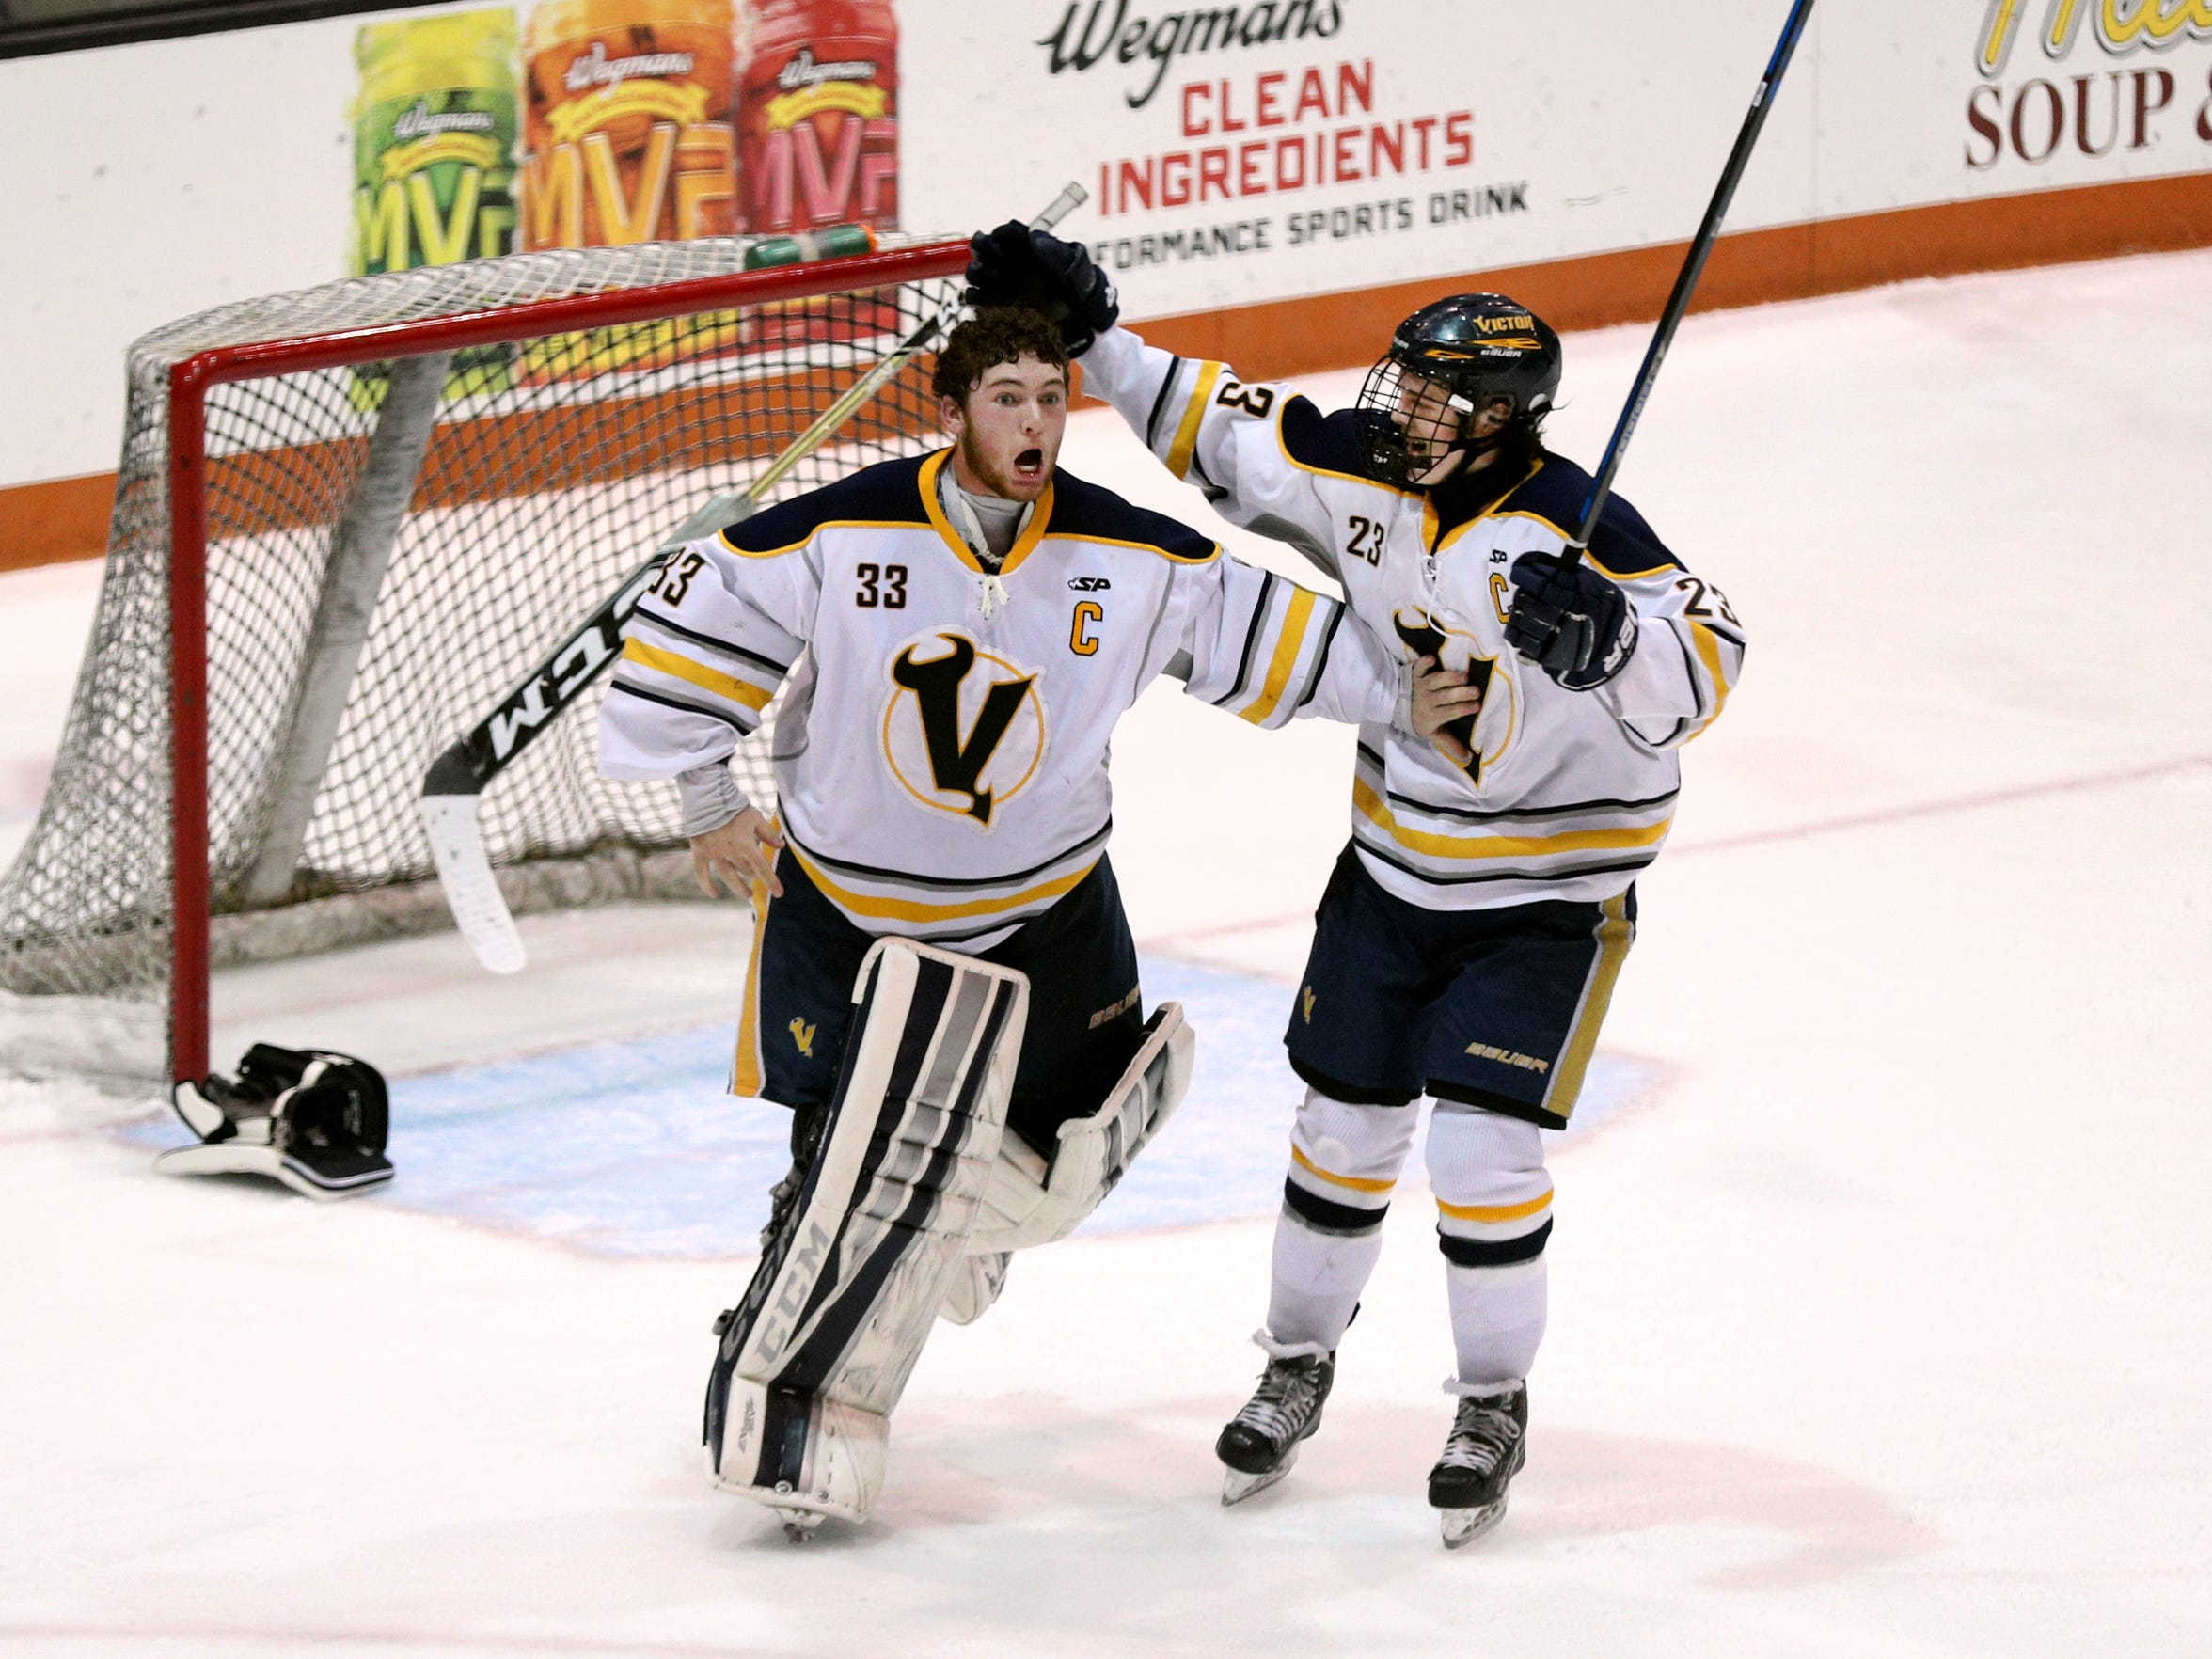 Victor goals Chayse Ierlan celebrates with teammate Andrew Crean (23) after beating Penfield 1-0 to win the Class A championship.  Ierlan made 39 saves and was named MVP.